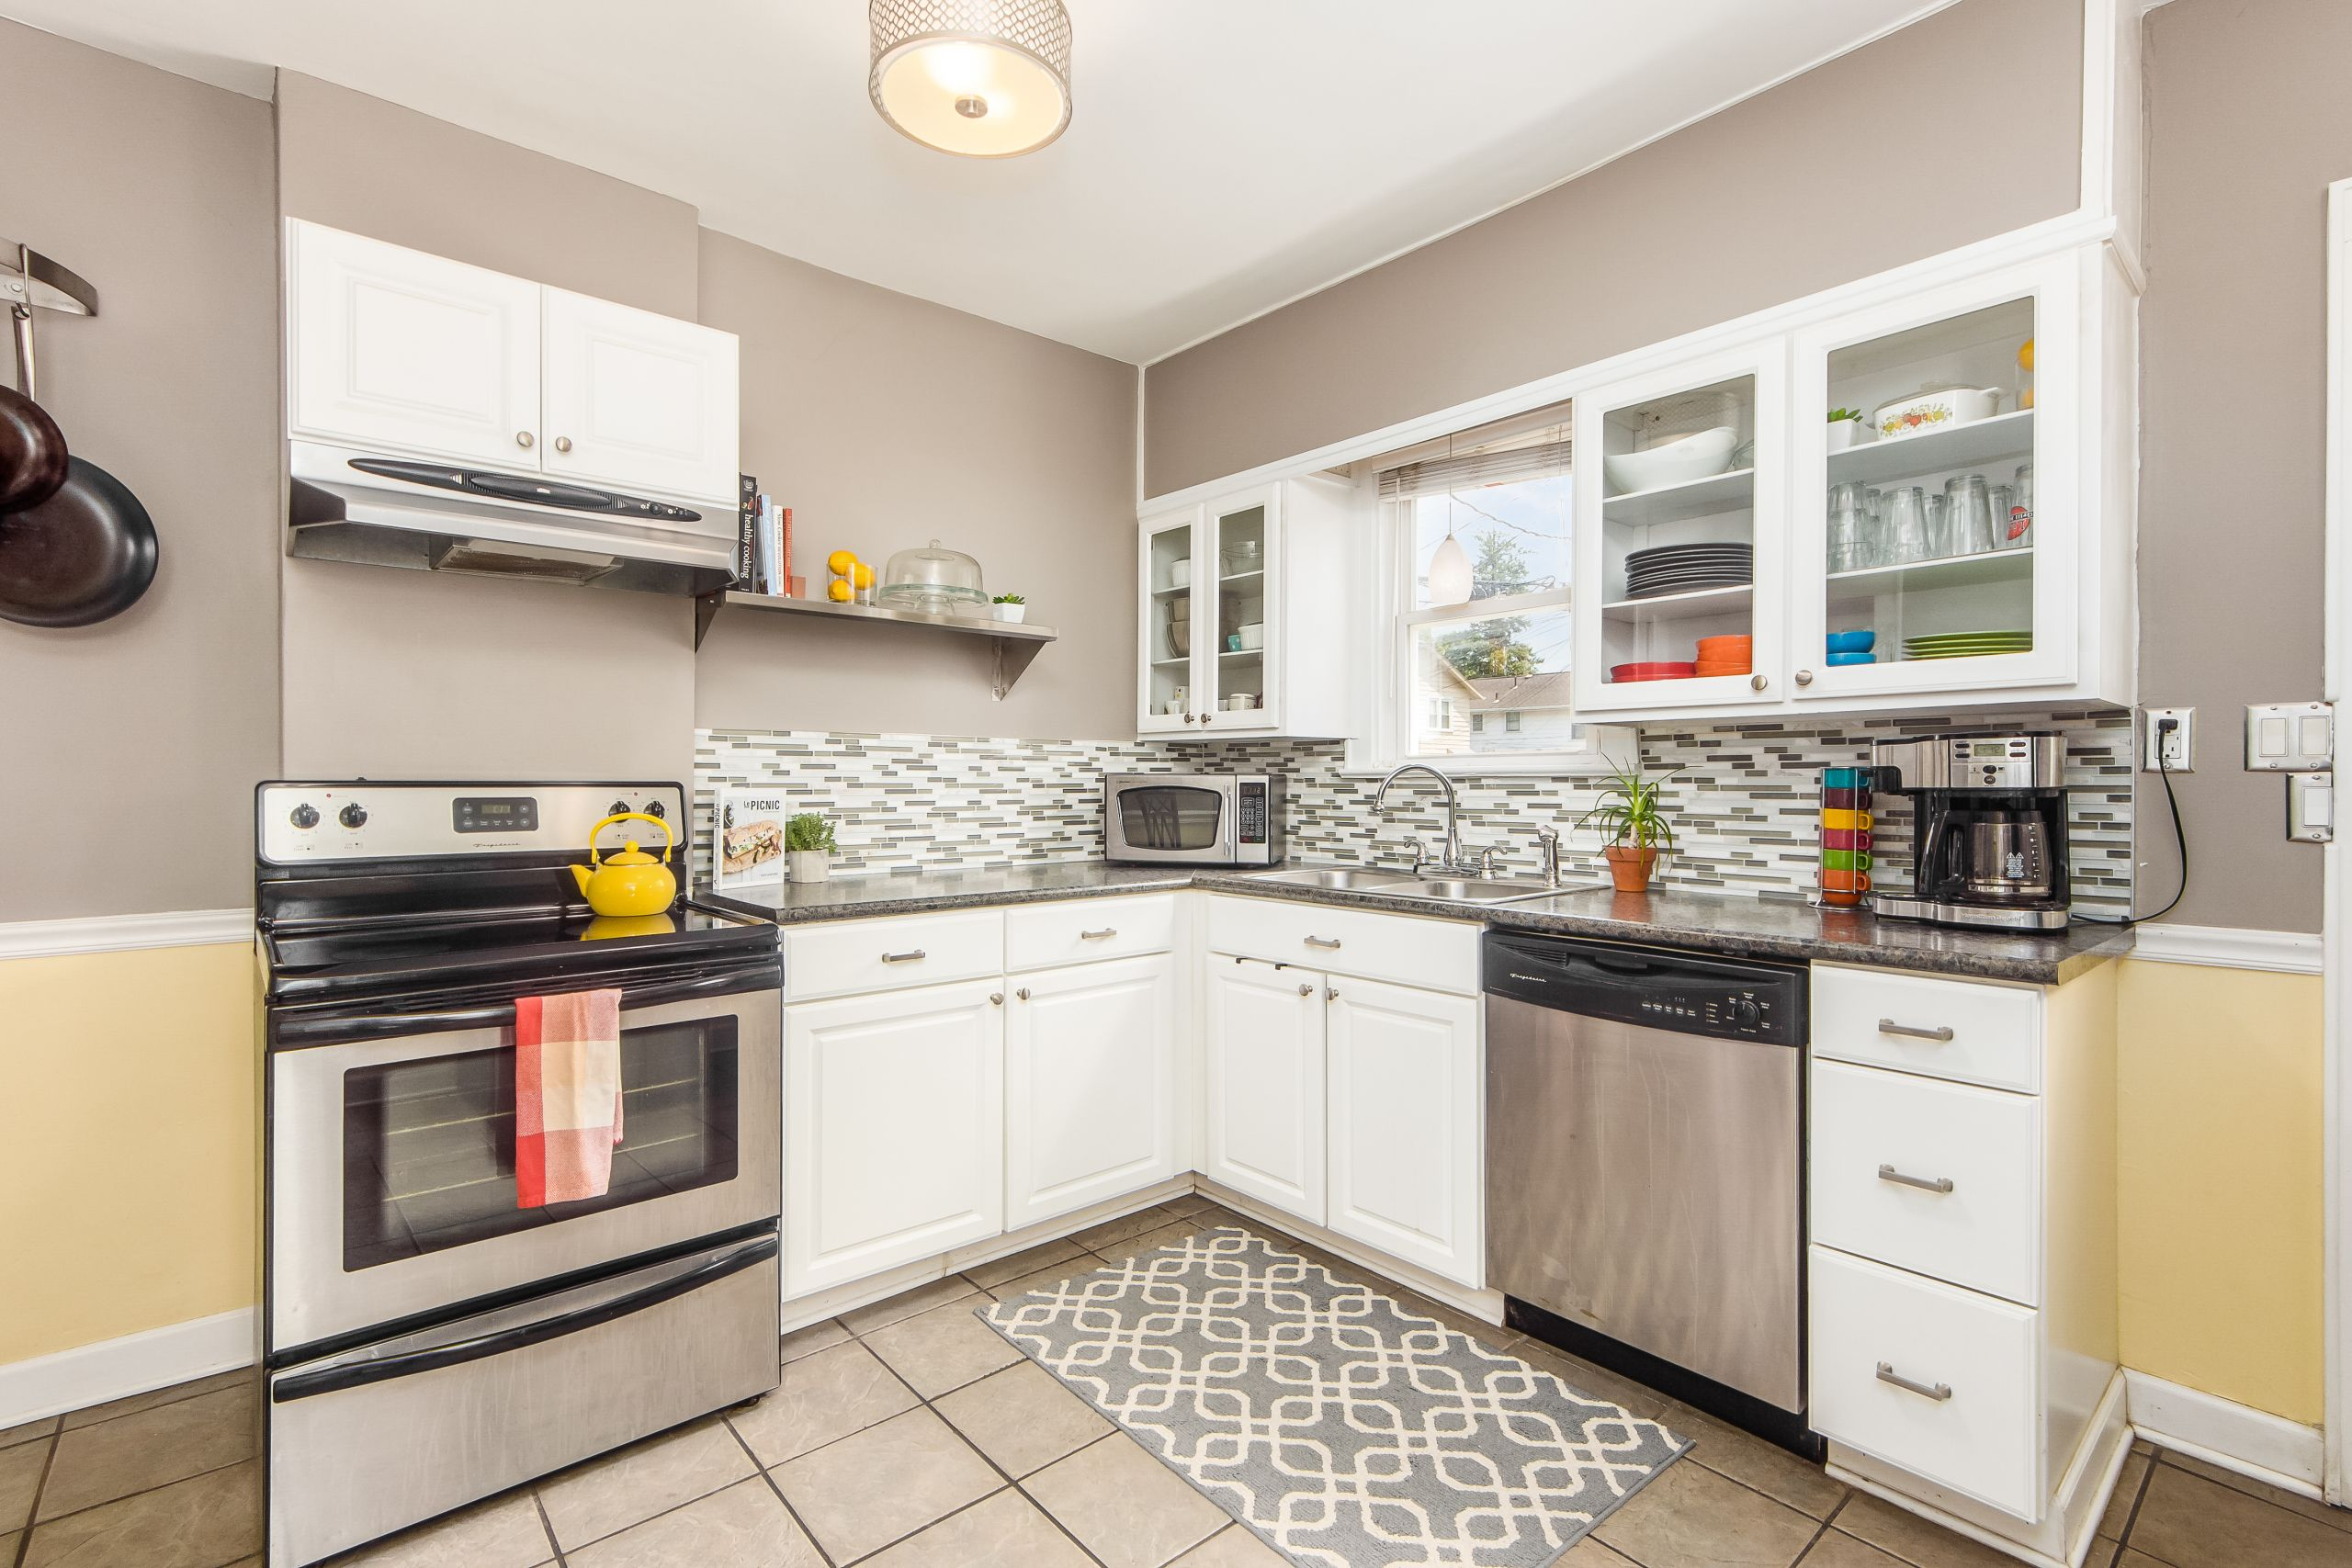 Tour the home in Grandview Heights